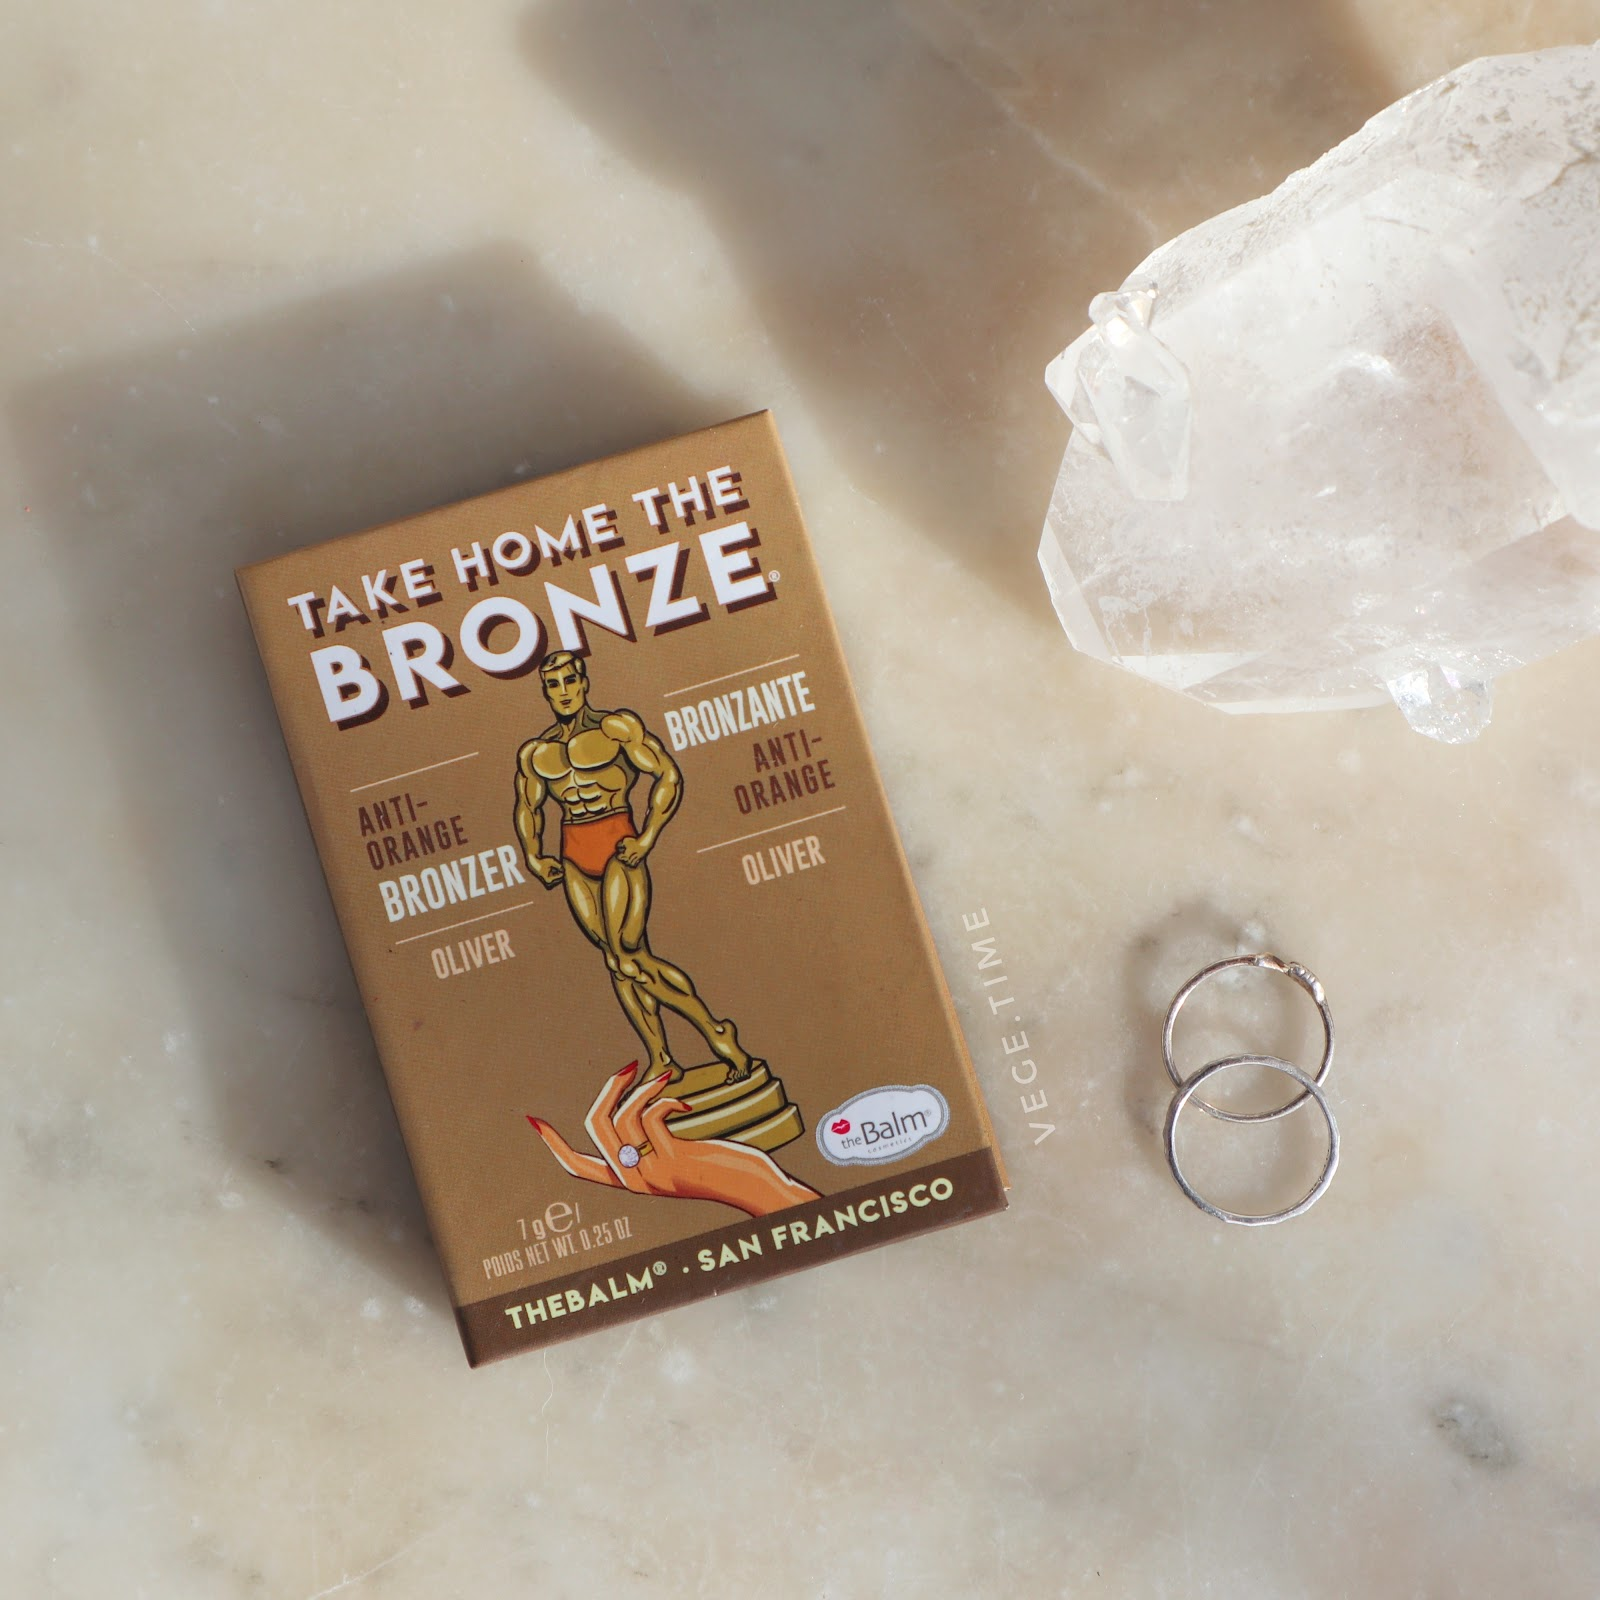 Wegański bronzer dla jasnej cery? The Balm Take Home The Bronze Oliver